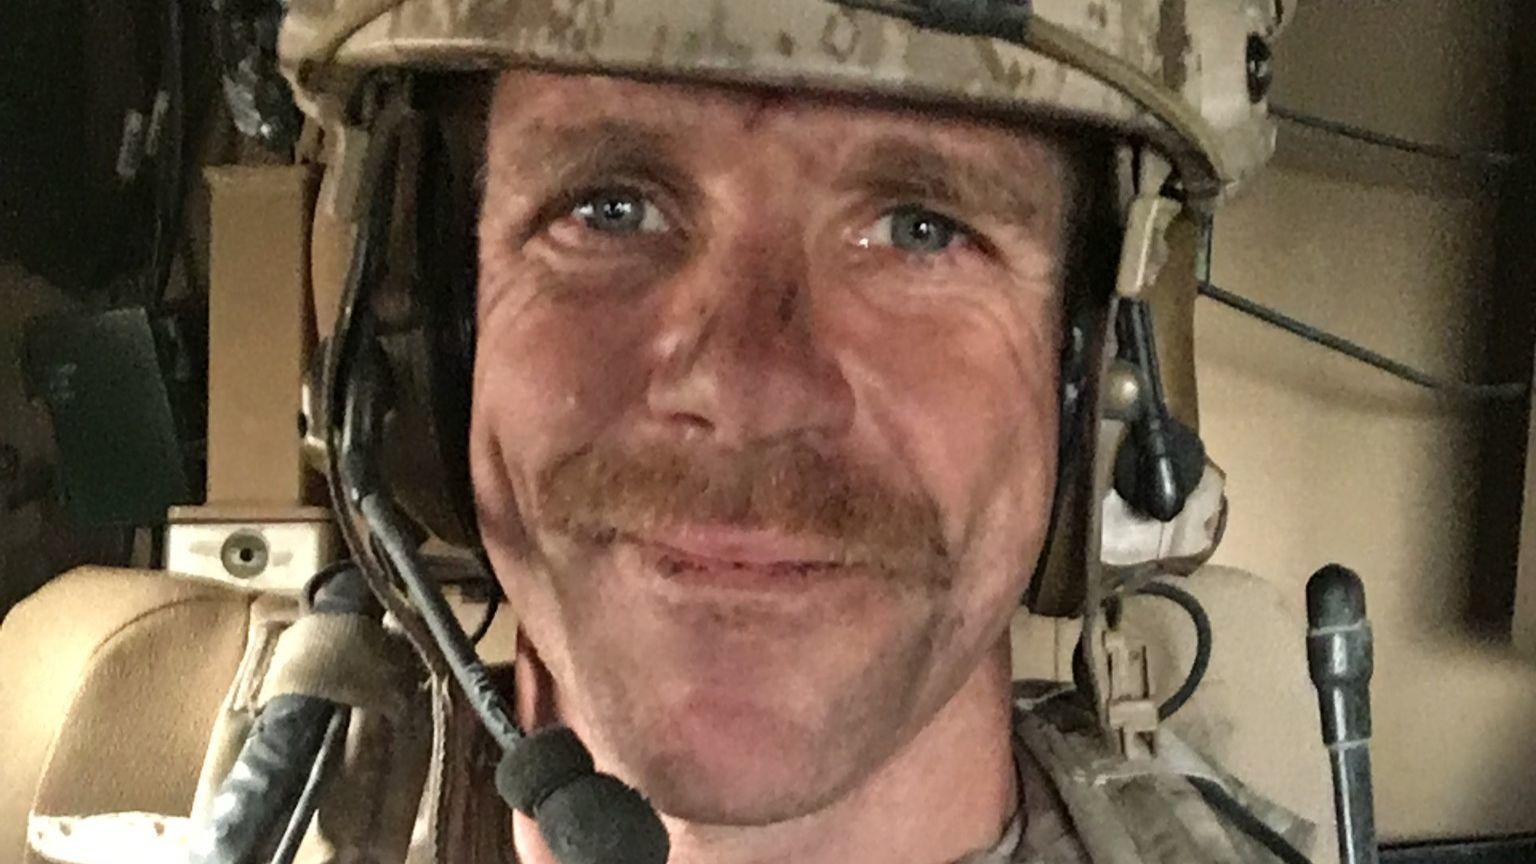 Decorated SEAL platoon leader charged with murder, other offenses during Iraq mission